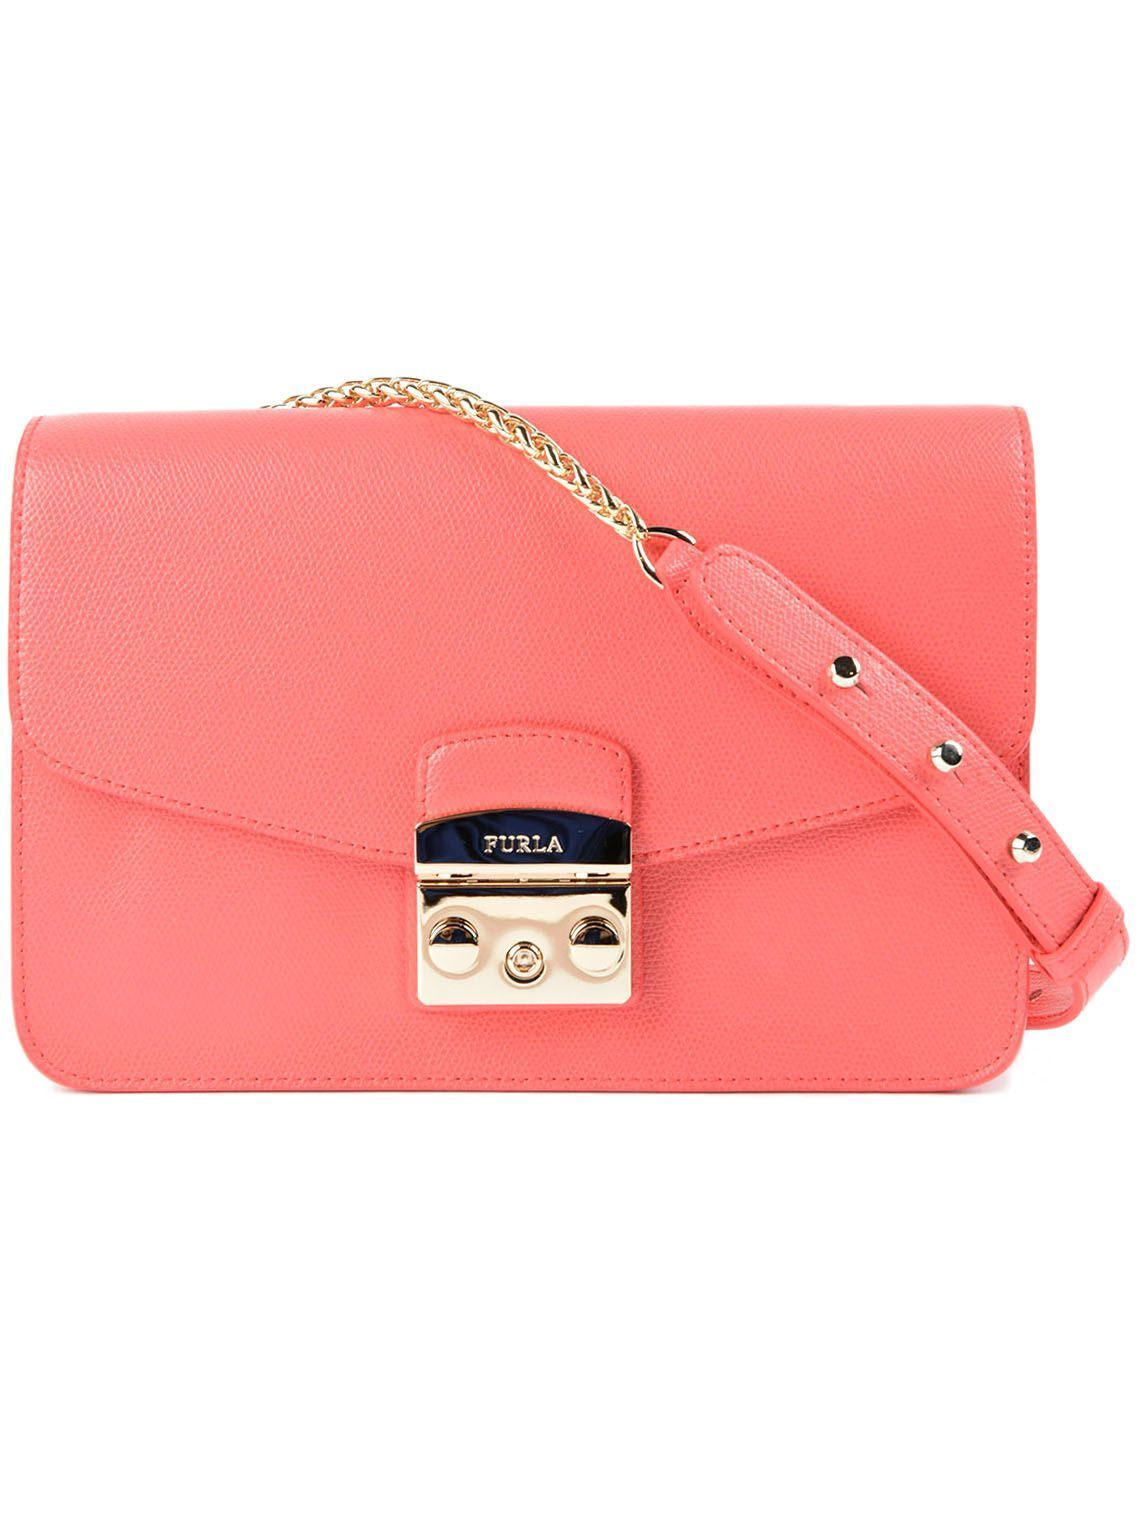 送料込 Furla Metropolis Small Shoulder Bag バッグ